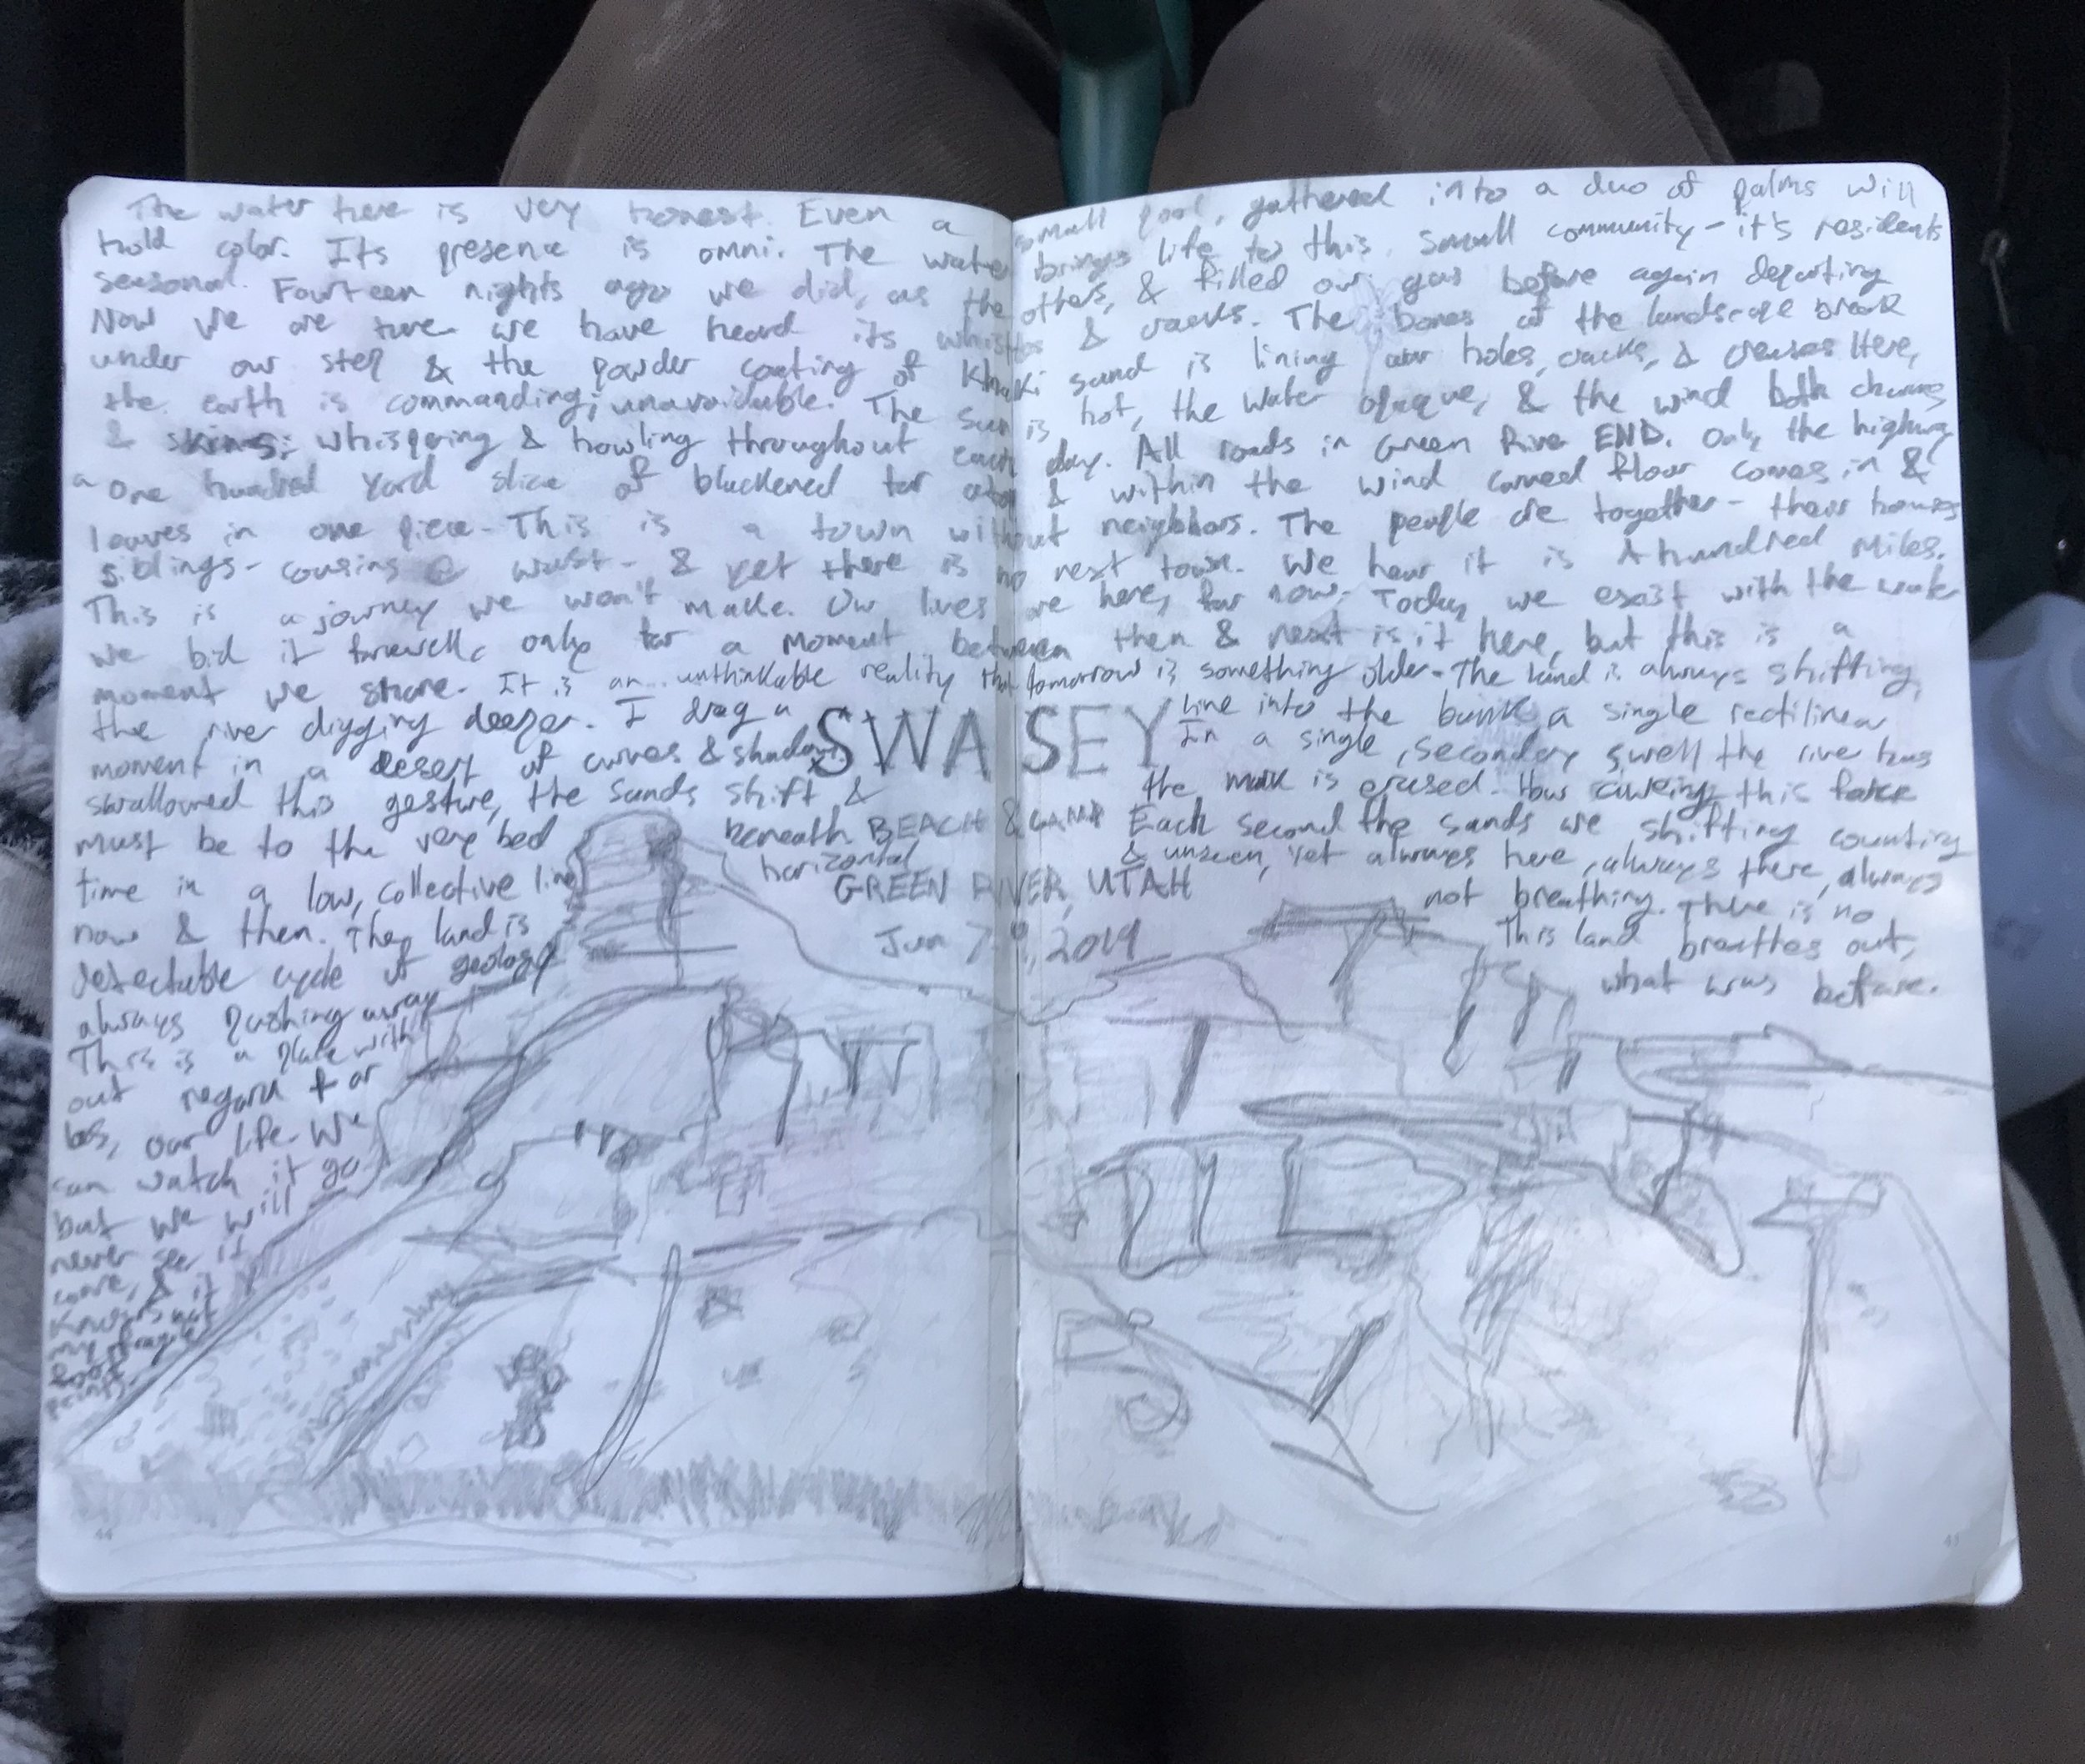 a long drawing of the view in front of our current residence, a shoreline public lands campsite along the Green River, and then some unplanned writings to accompany that sketch